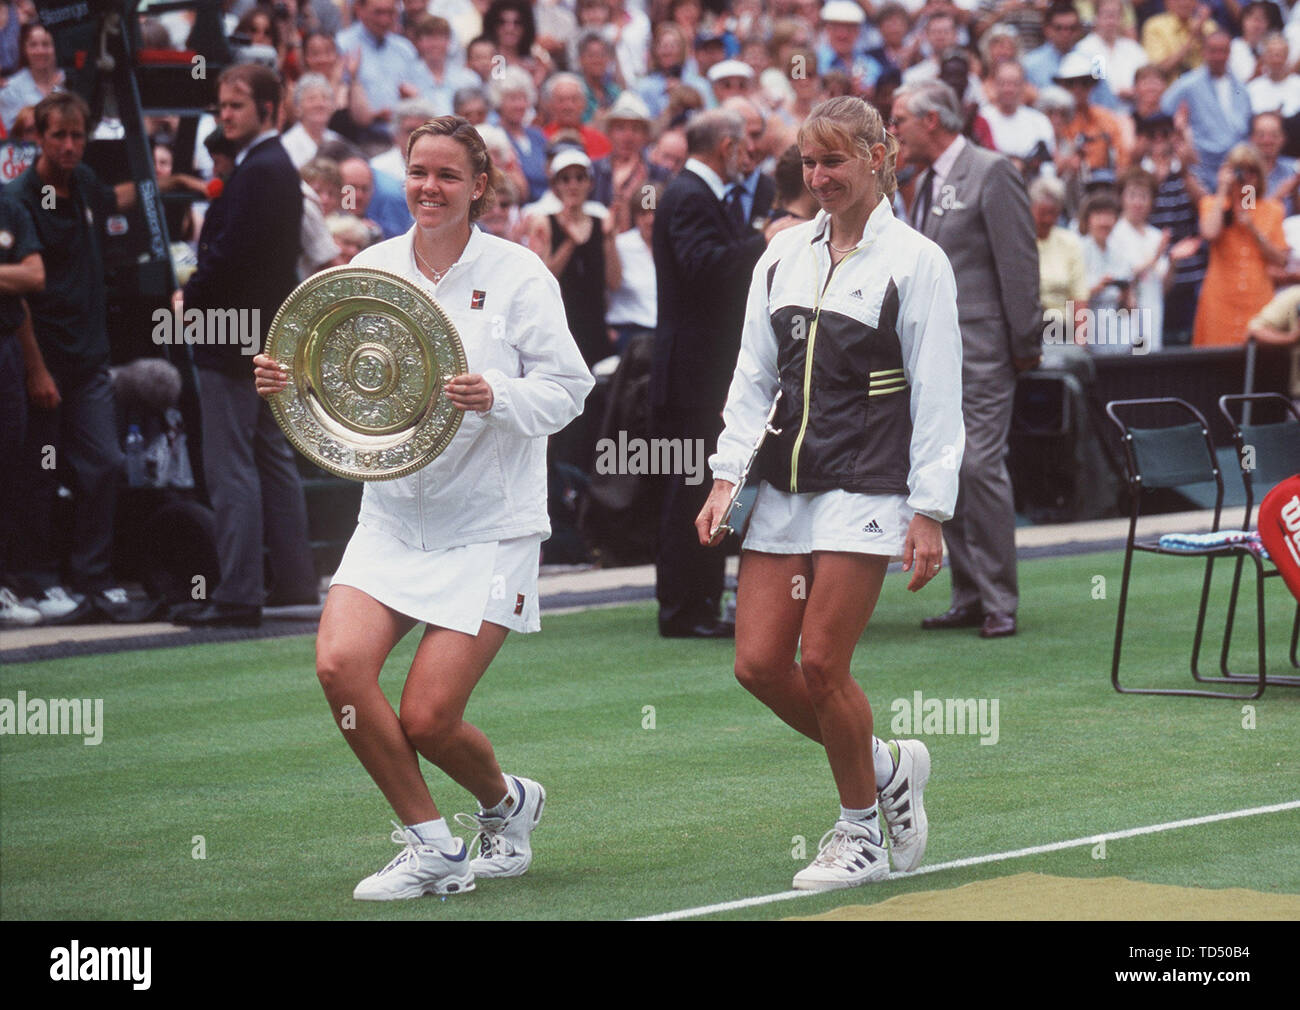 Steffi GRAF turns 50 on June 14, 2019, SN06079908SP.jpg Tennis Wimbledon 1999, Steffi GRAF with Lindsay DAVENPORT after the lost Wimbledon final SVEN SIMON # Huyssenallee 40-42 # 45128 Essen # tel.0201/234556 fax: 0201/234539 Kto .1428150 Commerzbank Essen BLZ 36040039 Image can be digitally in color on Leonardo Pro be transferred, or APIS ONLINE at 089 455022 62. | usage worldwide - Stock Image